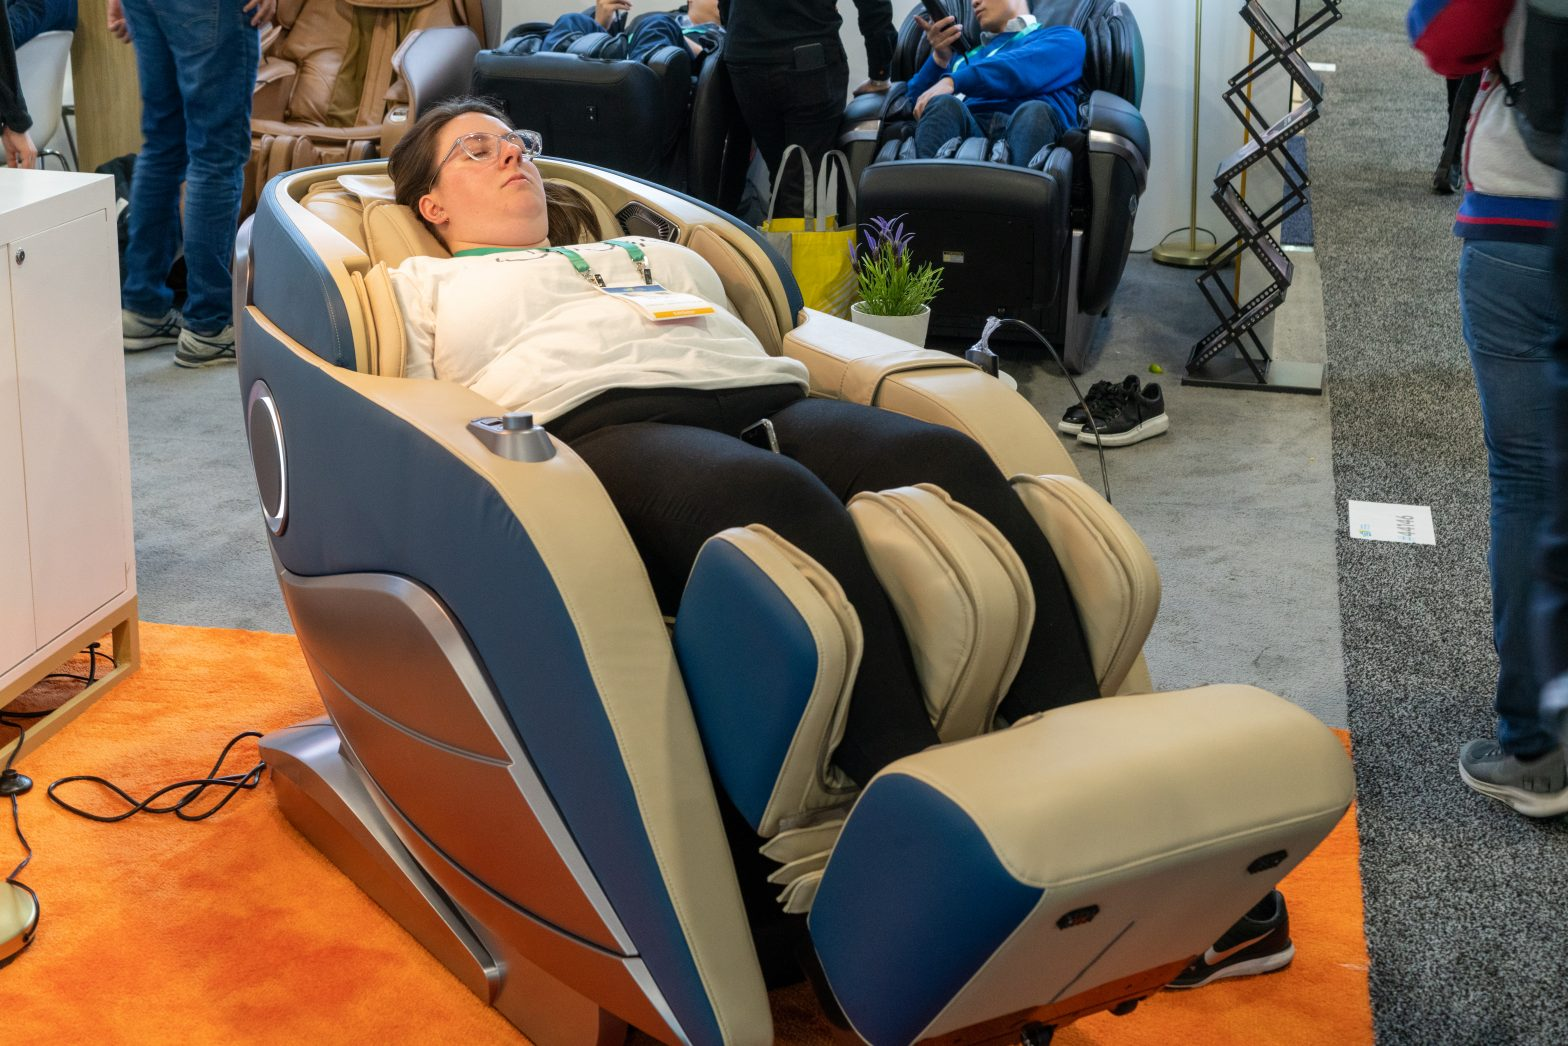 woman sleeping in massage chair